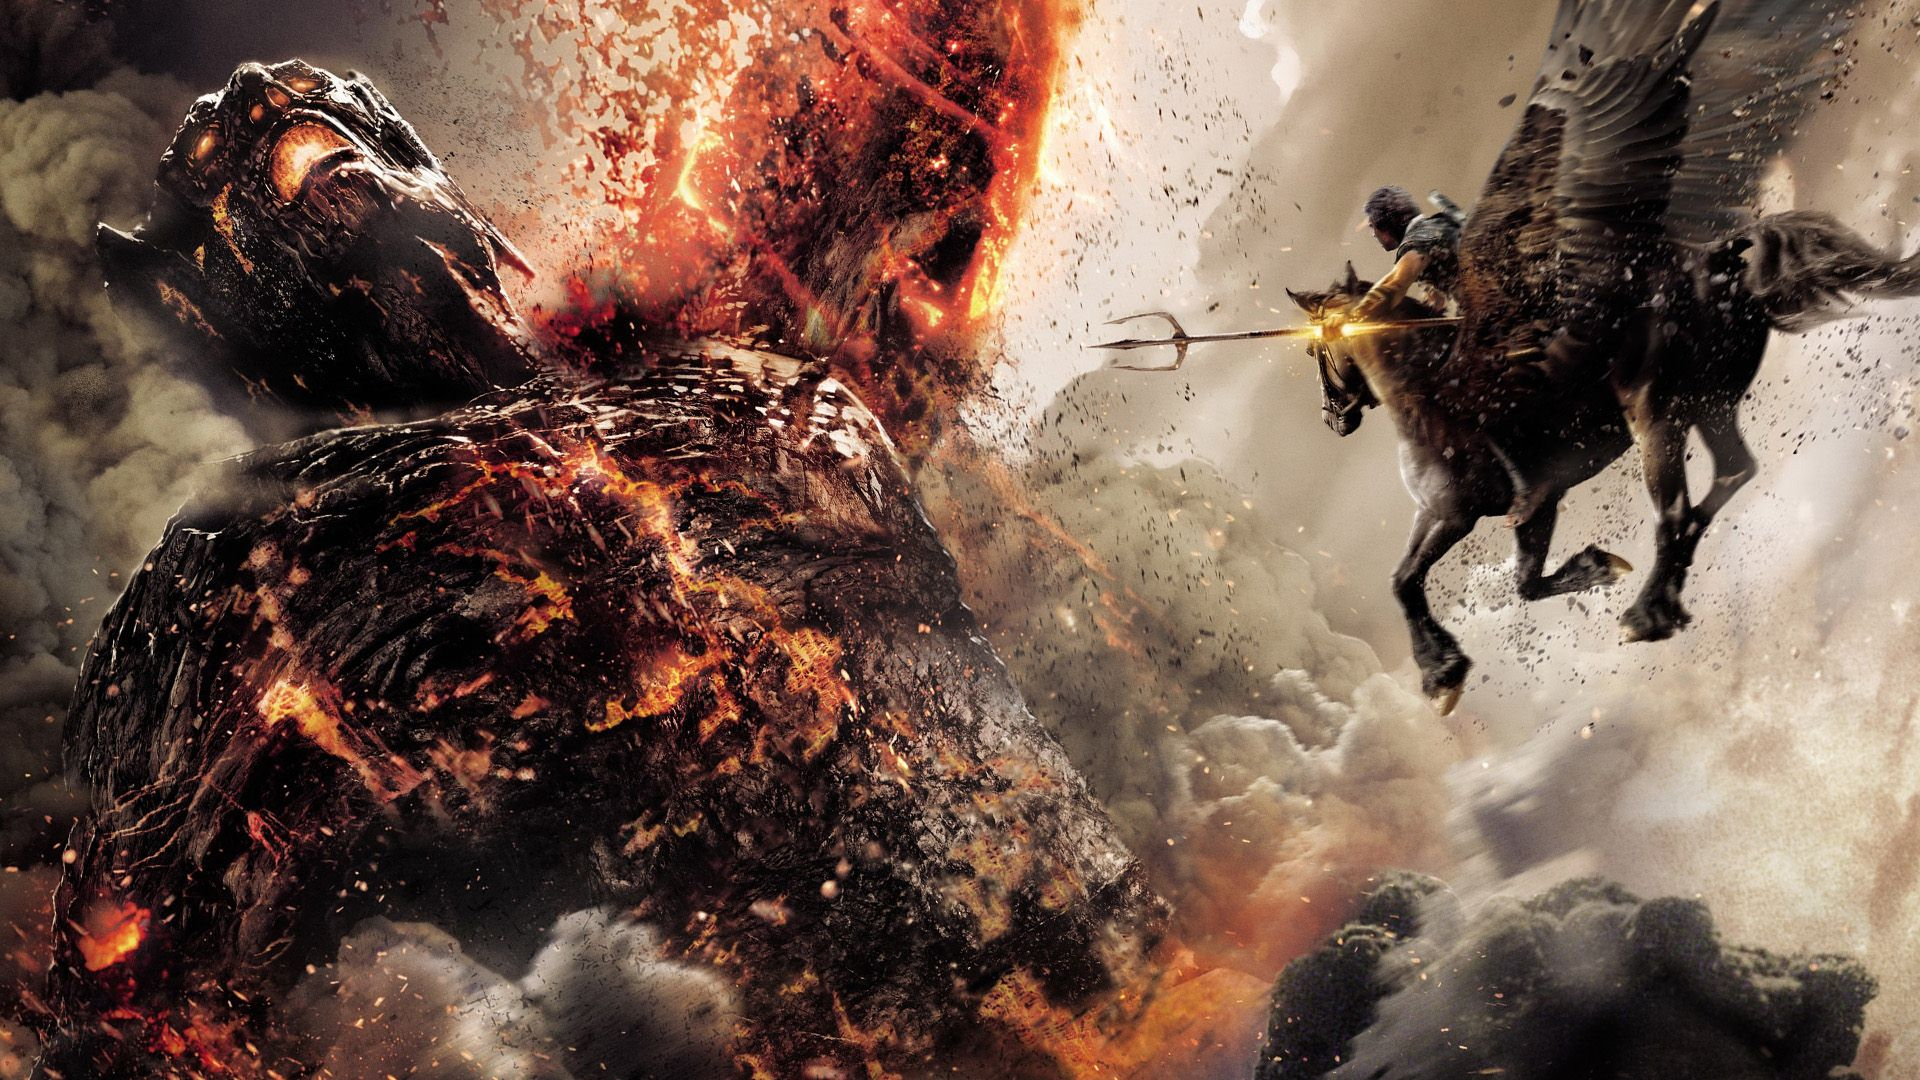 wrath of the titans wallpaper 58195